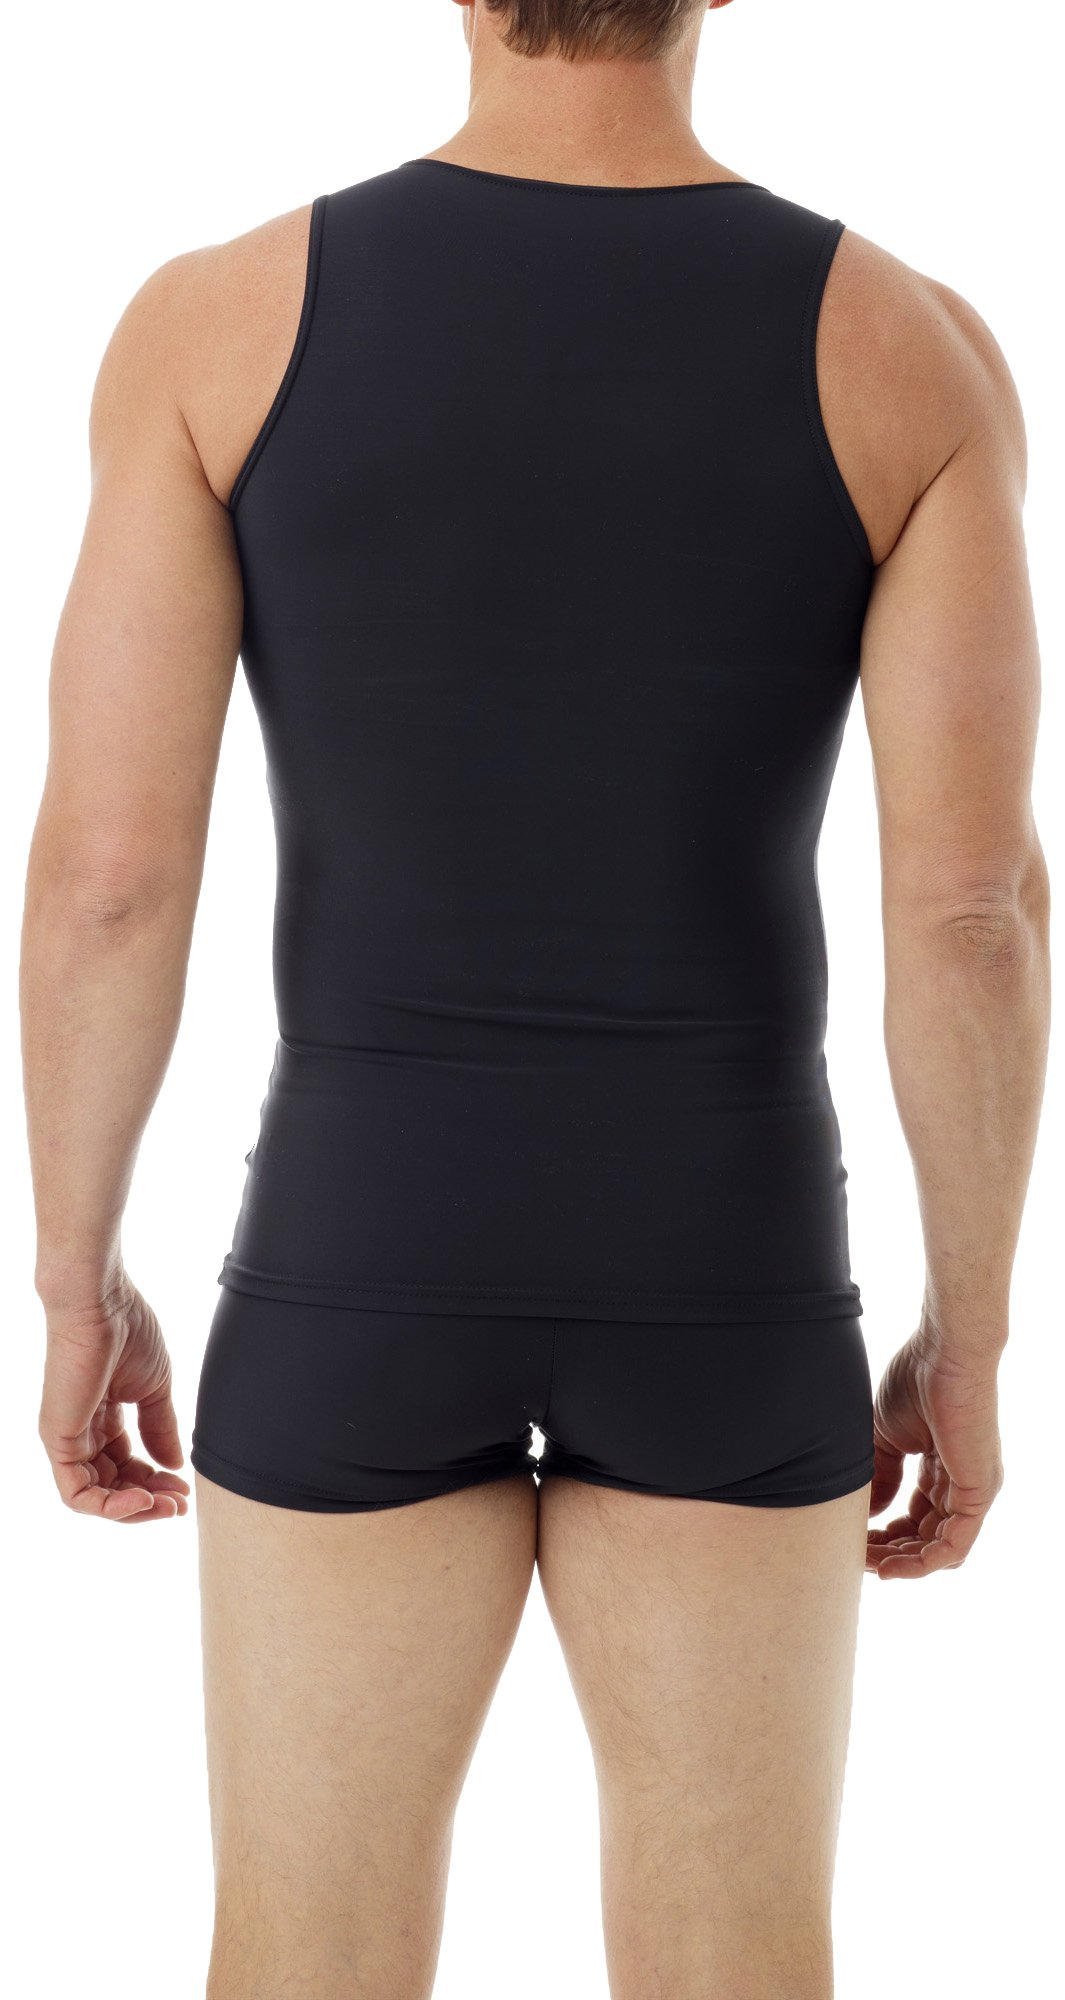 Underworks Mens Microfiber Compression Tank, XSmall, Black by Underworks (Image #2)